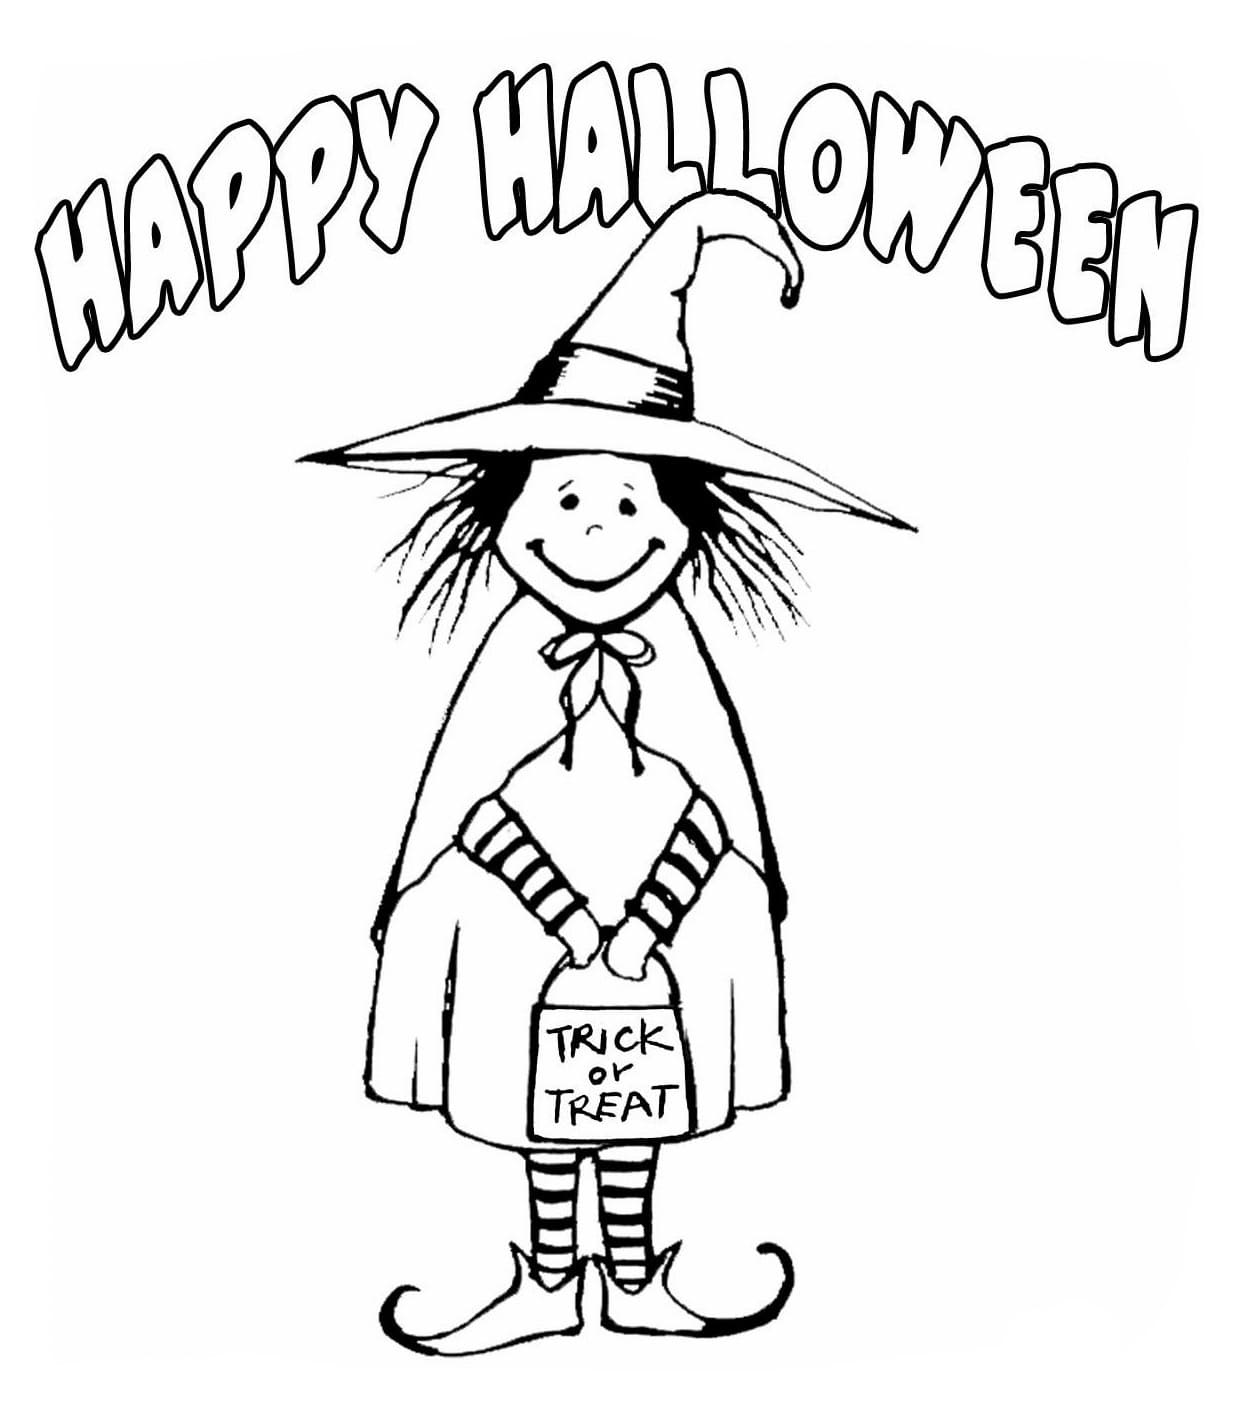 Trick or Treat Coloring Pages. Free Printables | WONDER DAY